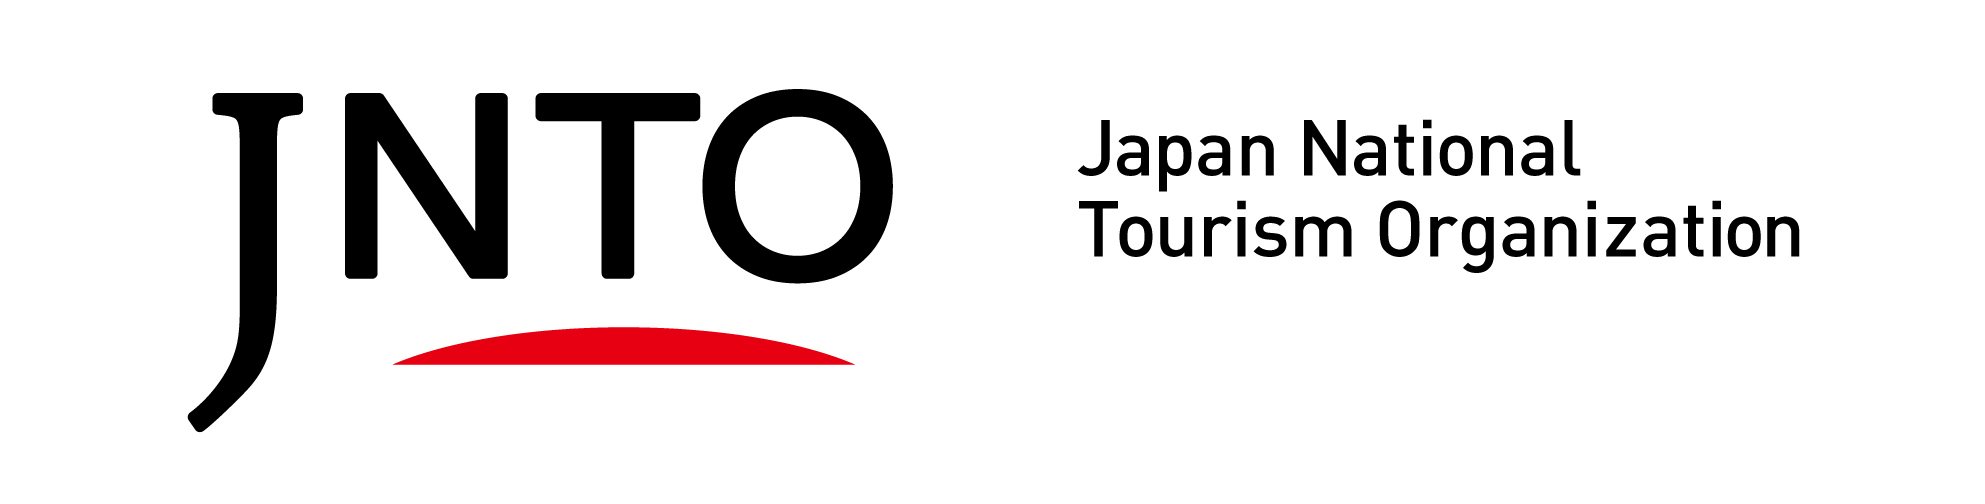 Japan National Tourism Organization (JNTO)